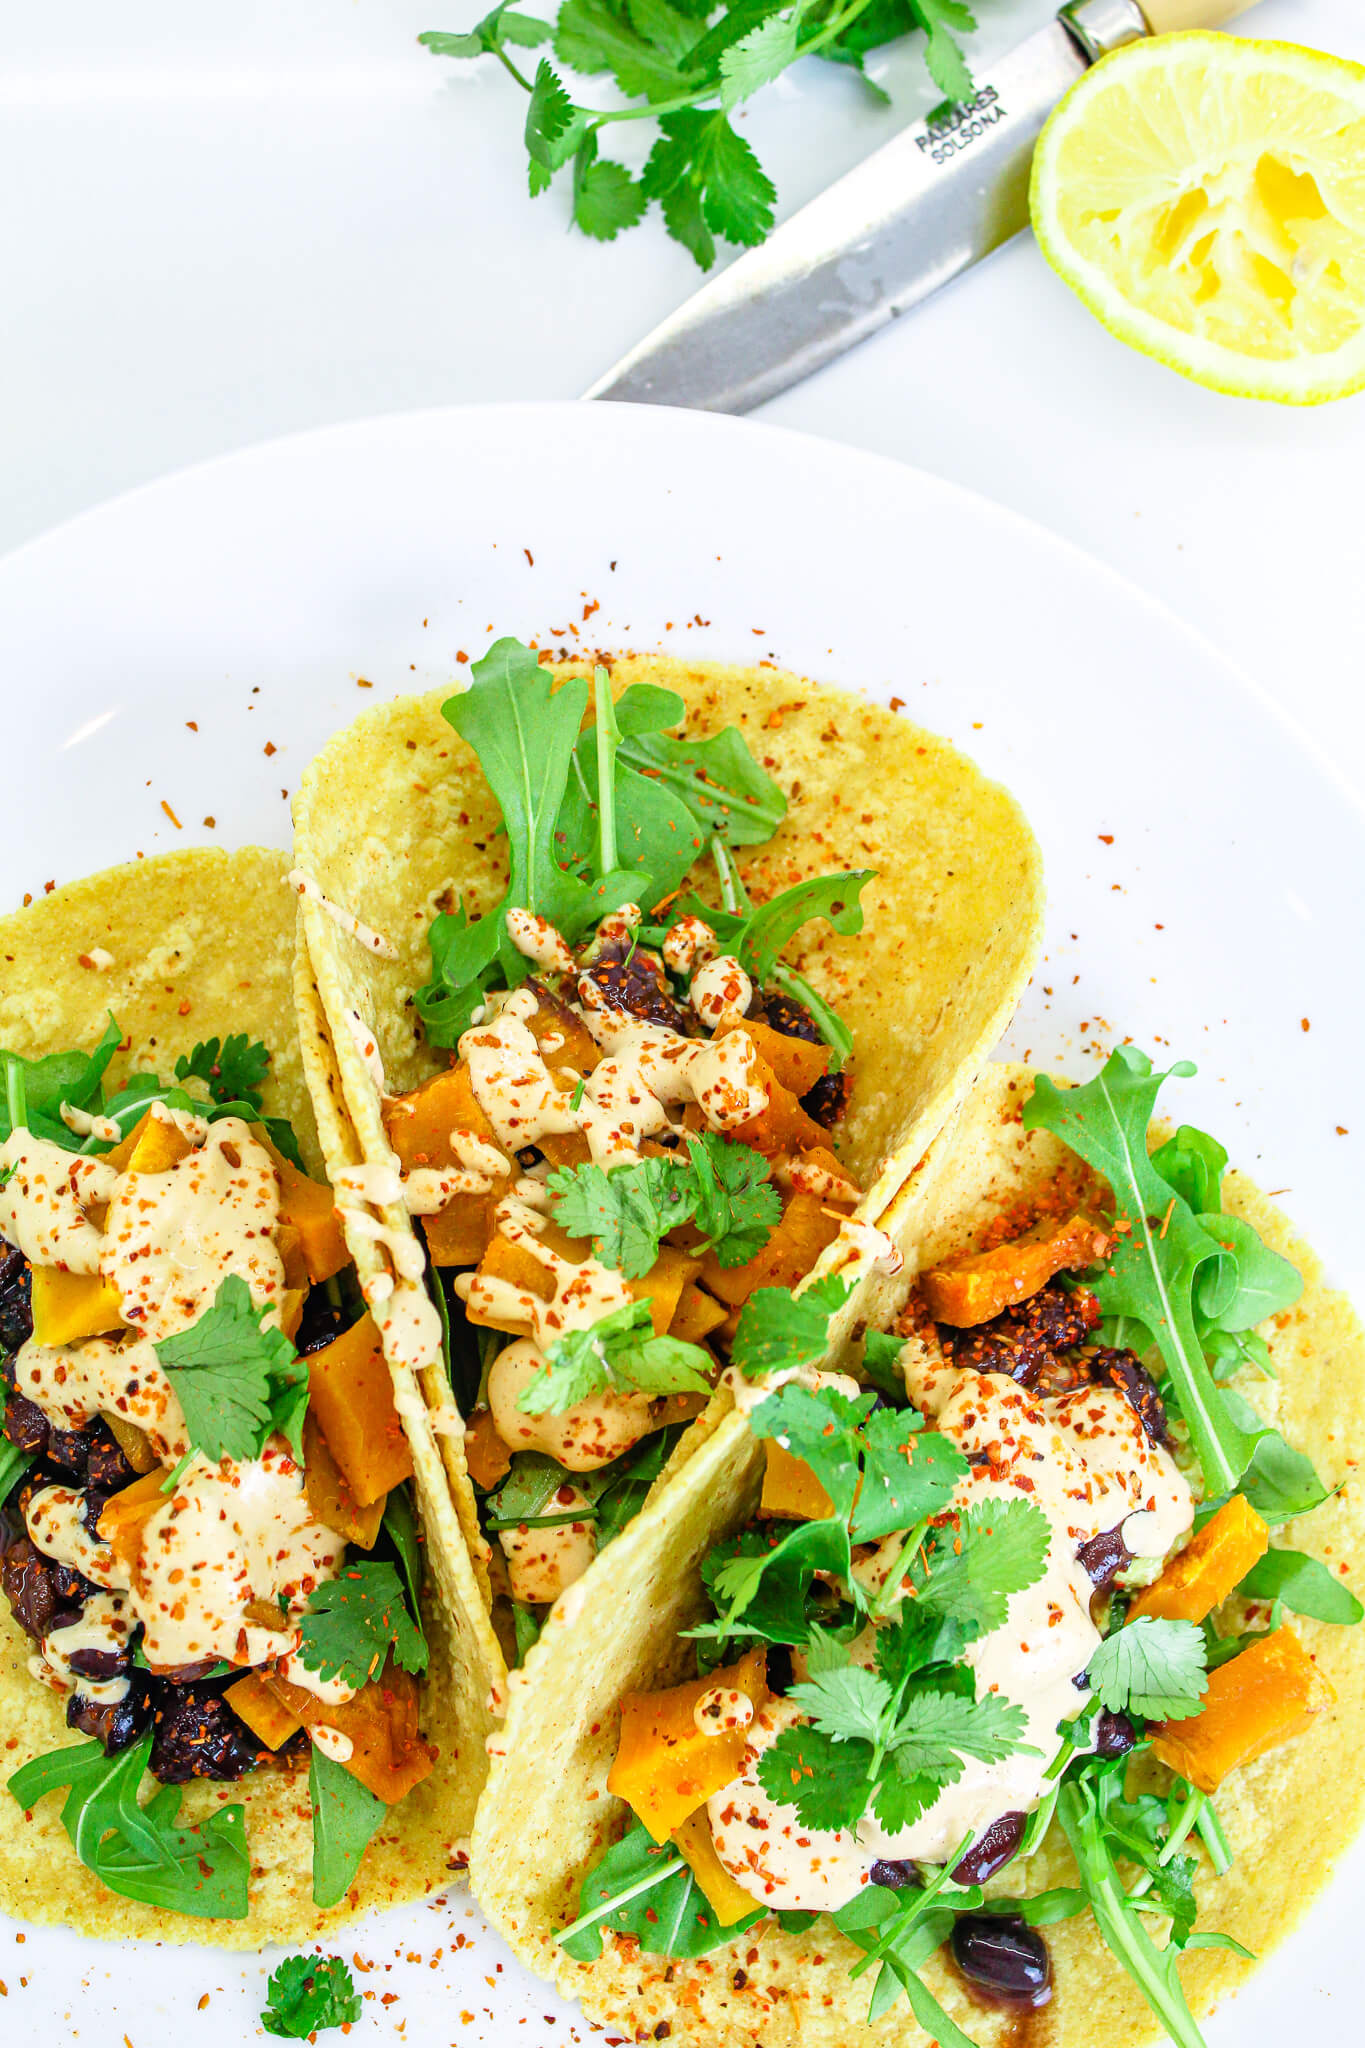 Sustainable and Plant-based Lifestyle influencer shares her delicious Sweet Potato Street Tacosrecipe!